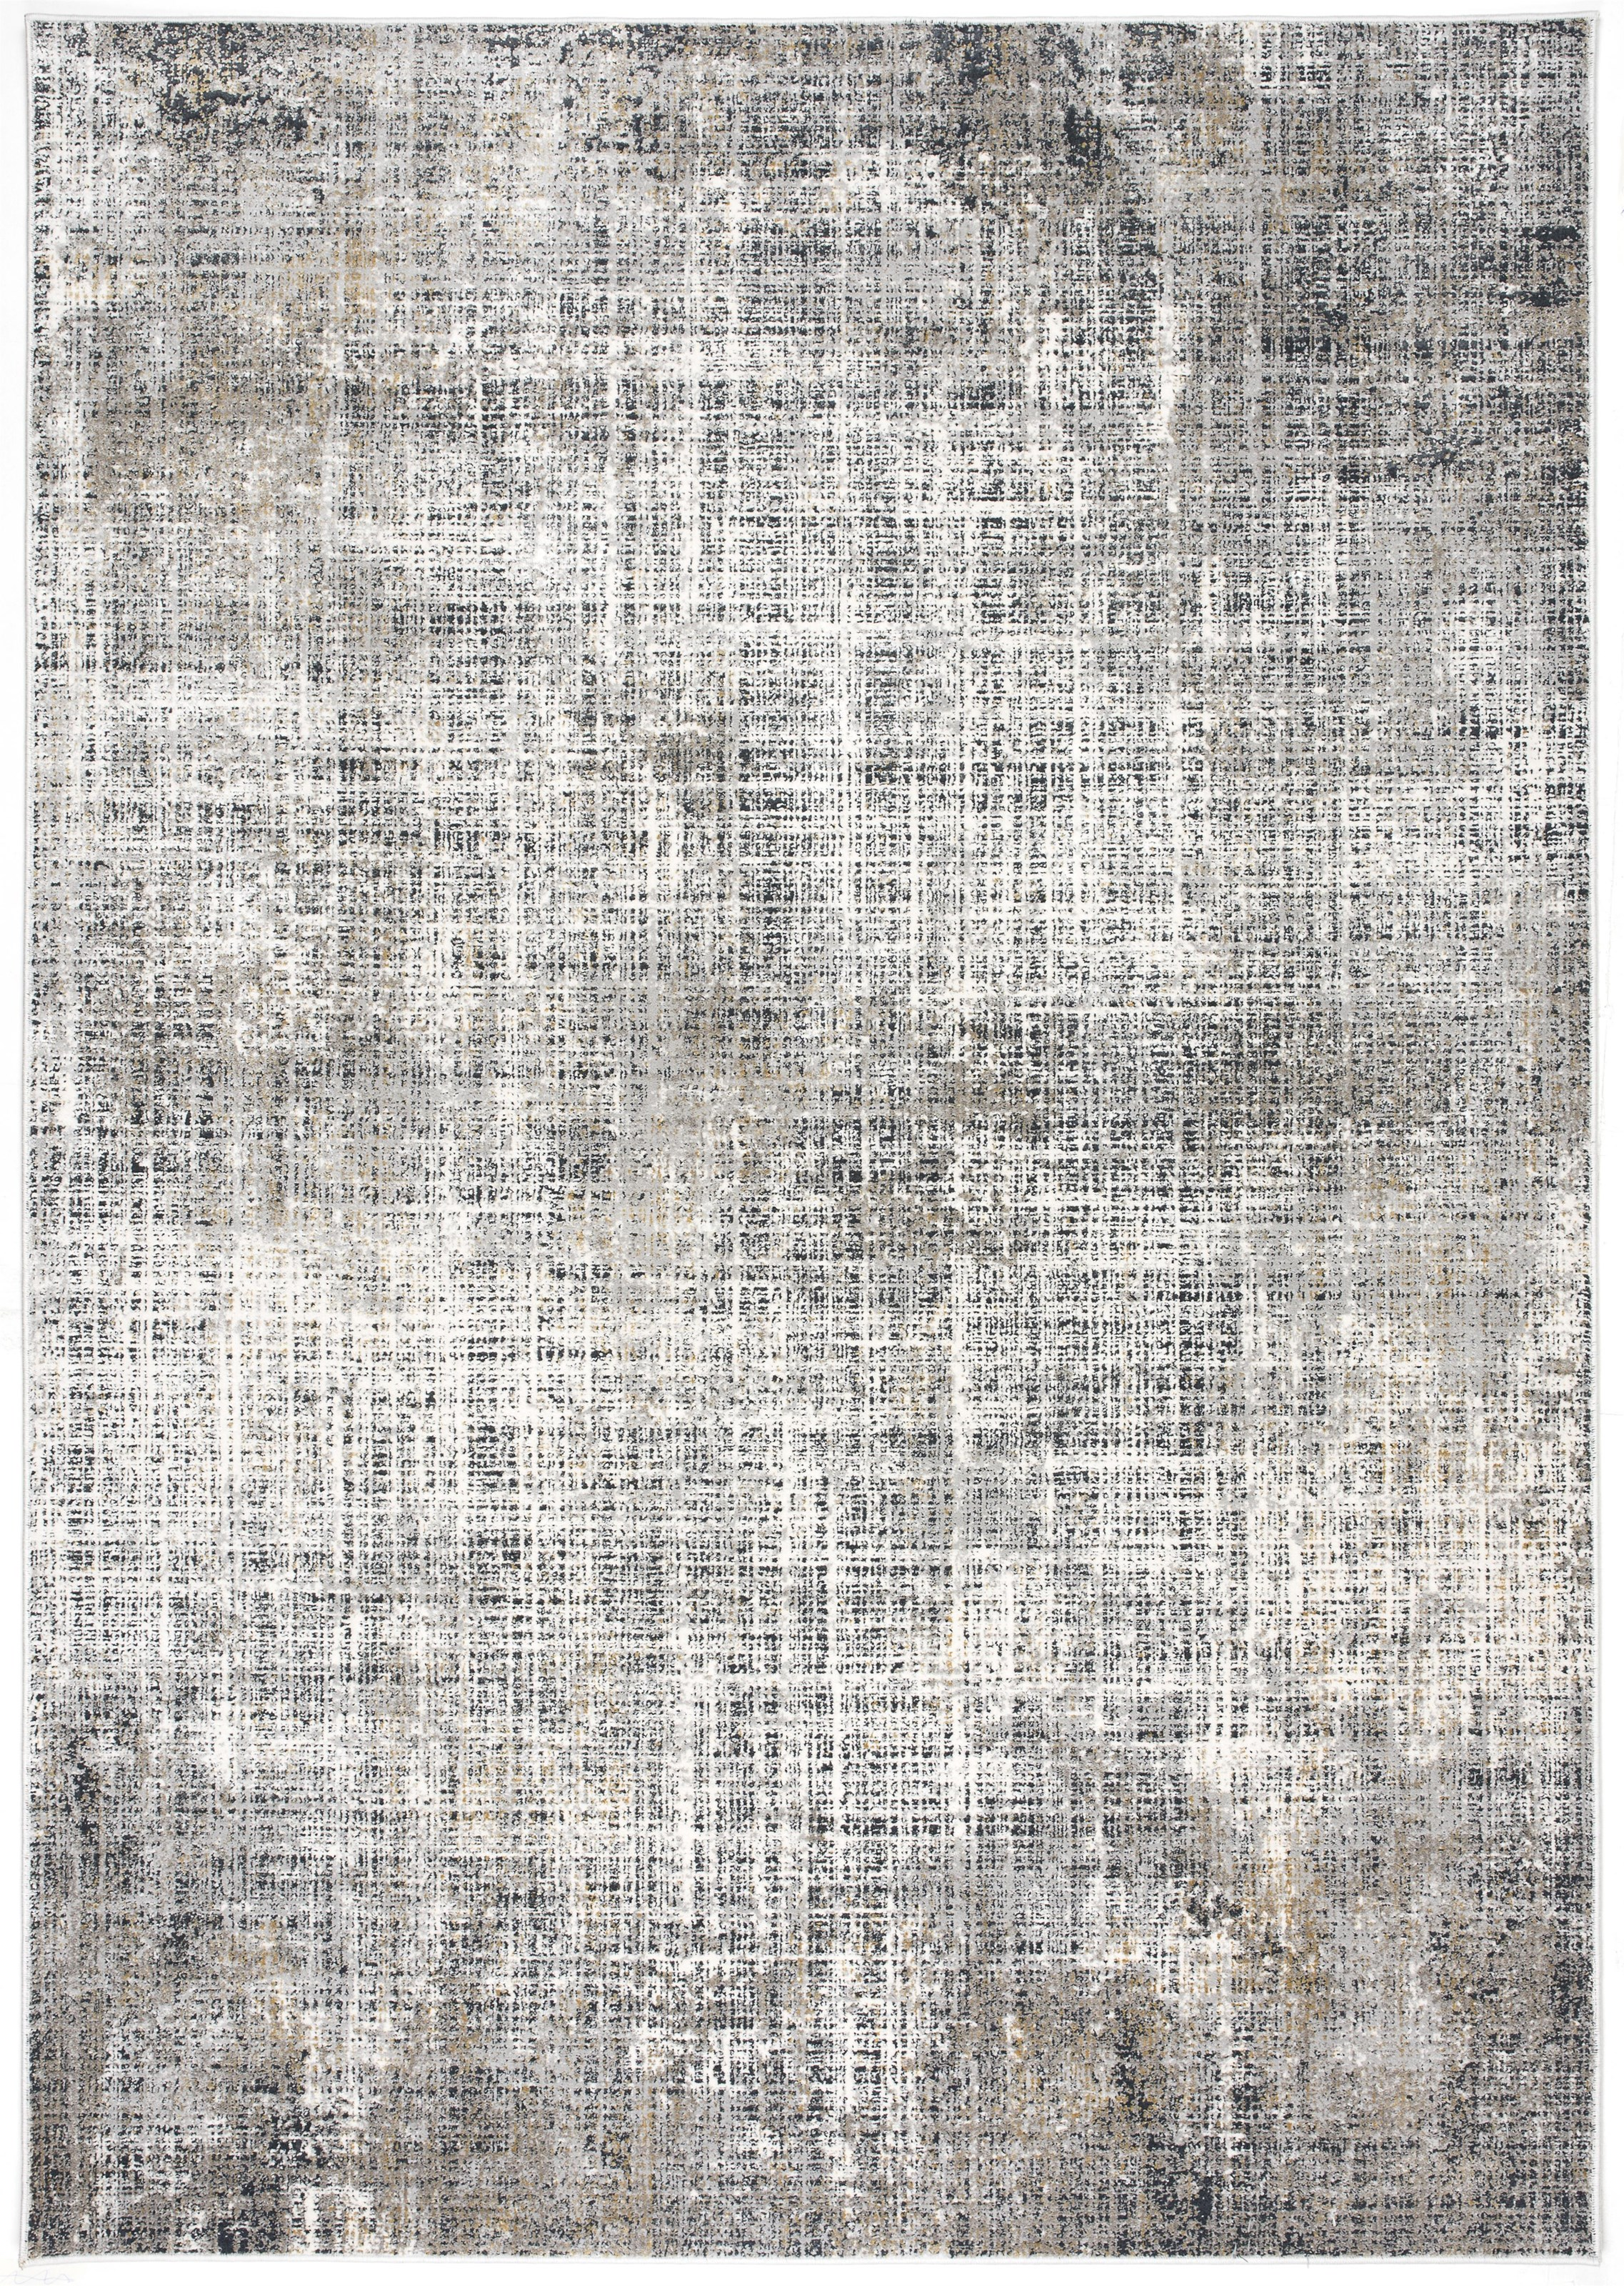 Christian 5X7 Area Rug by MDA Rugs at Darvin Furniture